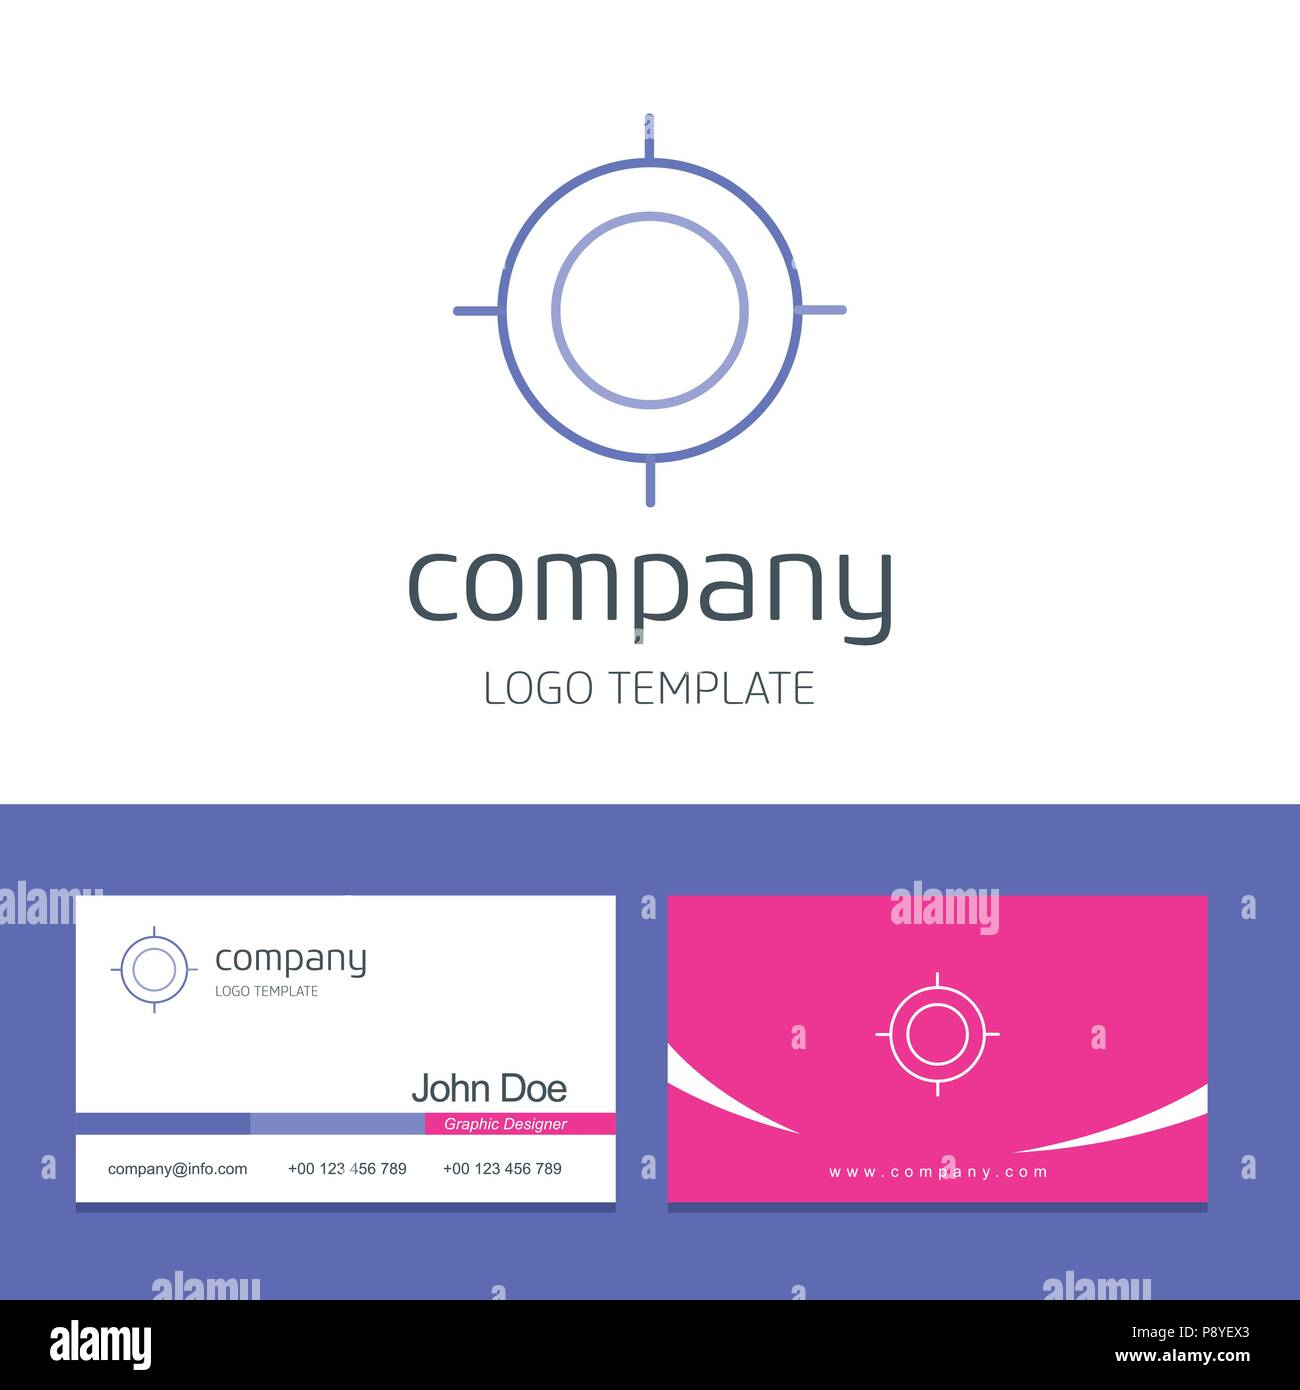 Business card design with target company logo vector for web design business card design with target company logo vector for web design and application interface also useful for infographics vector illustration colourmoves